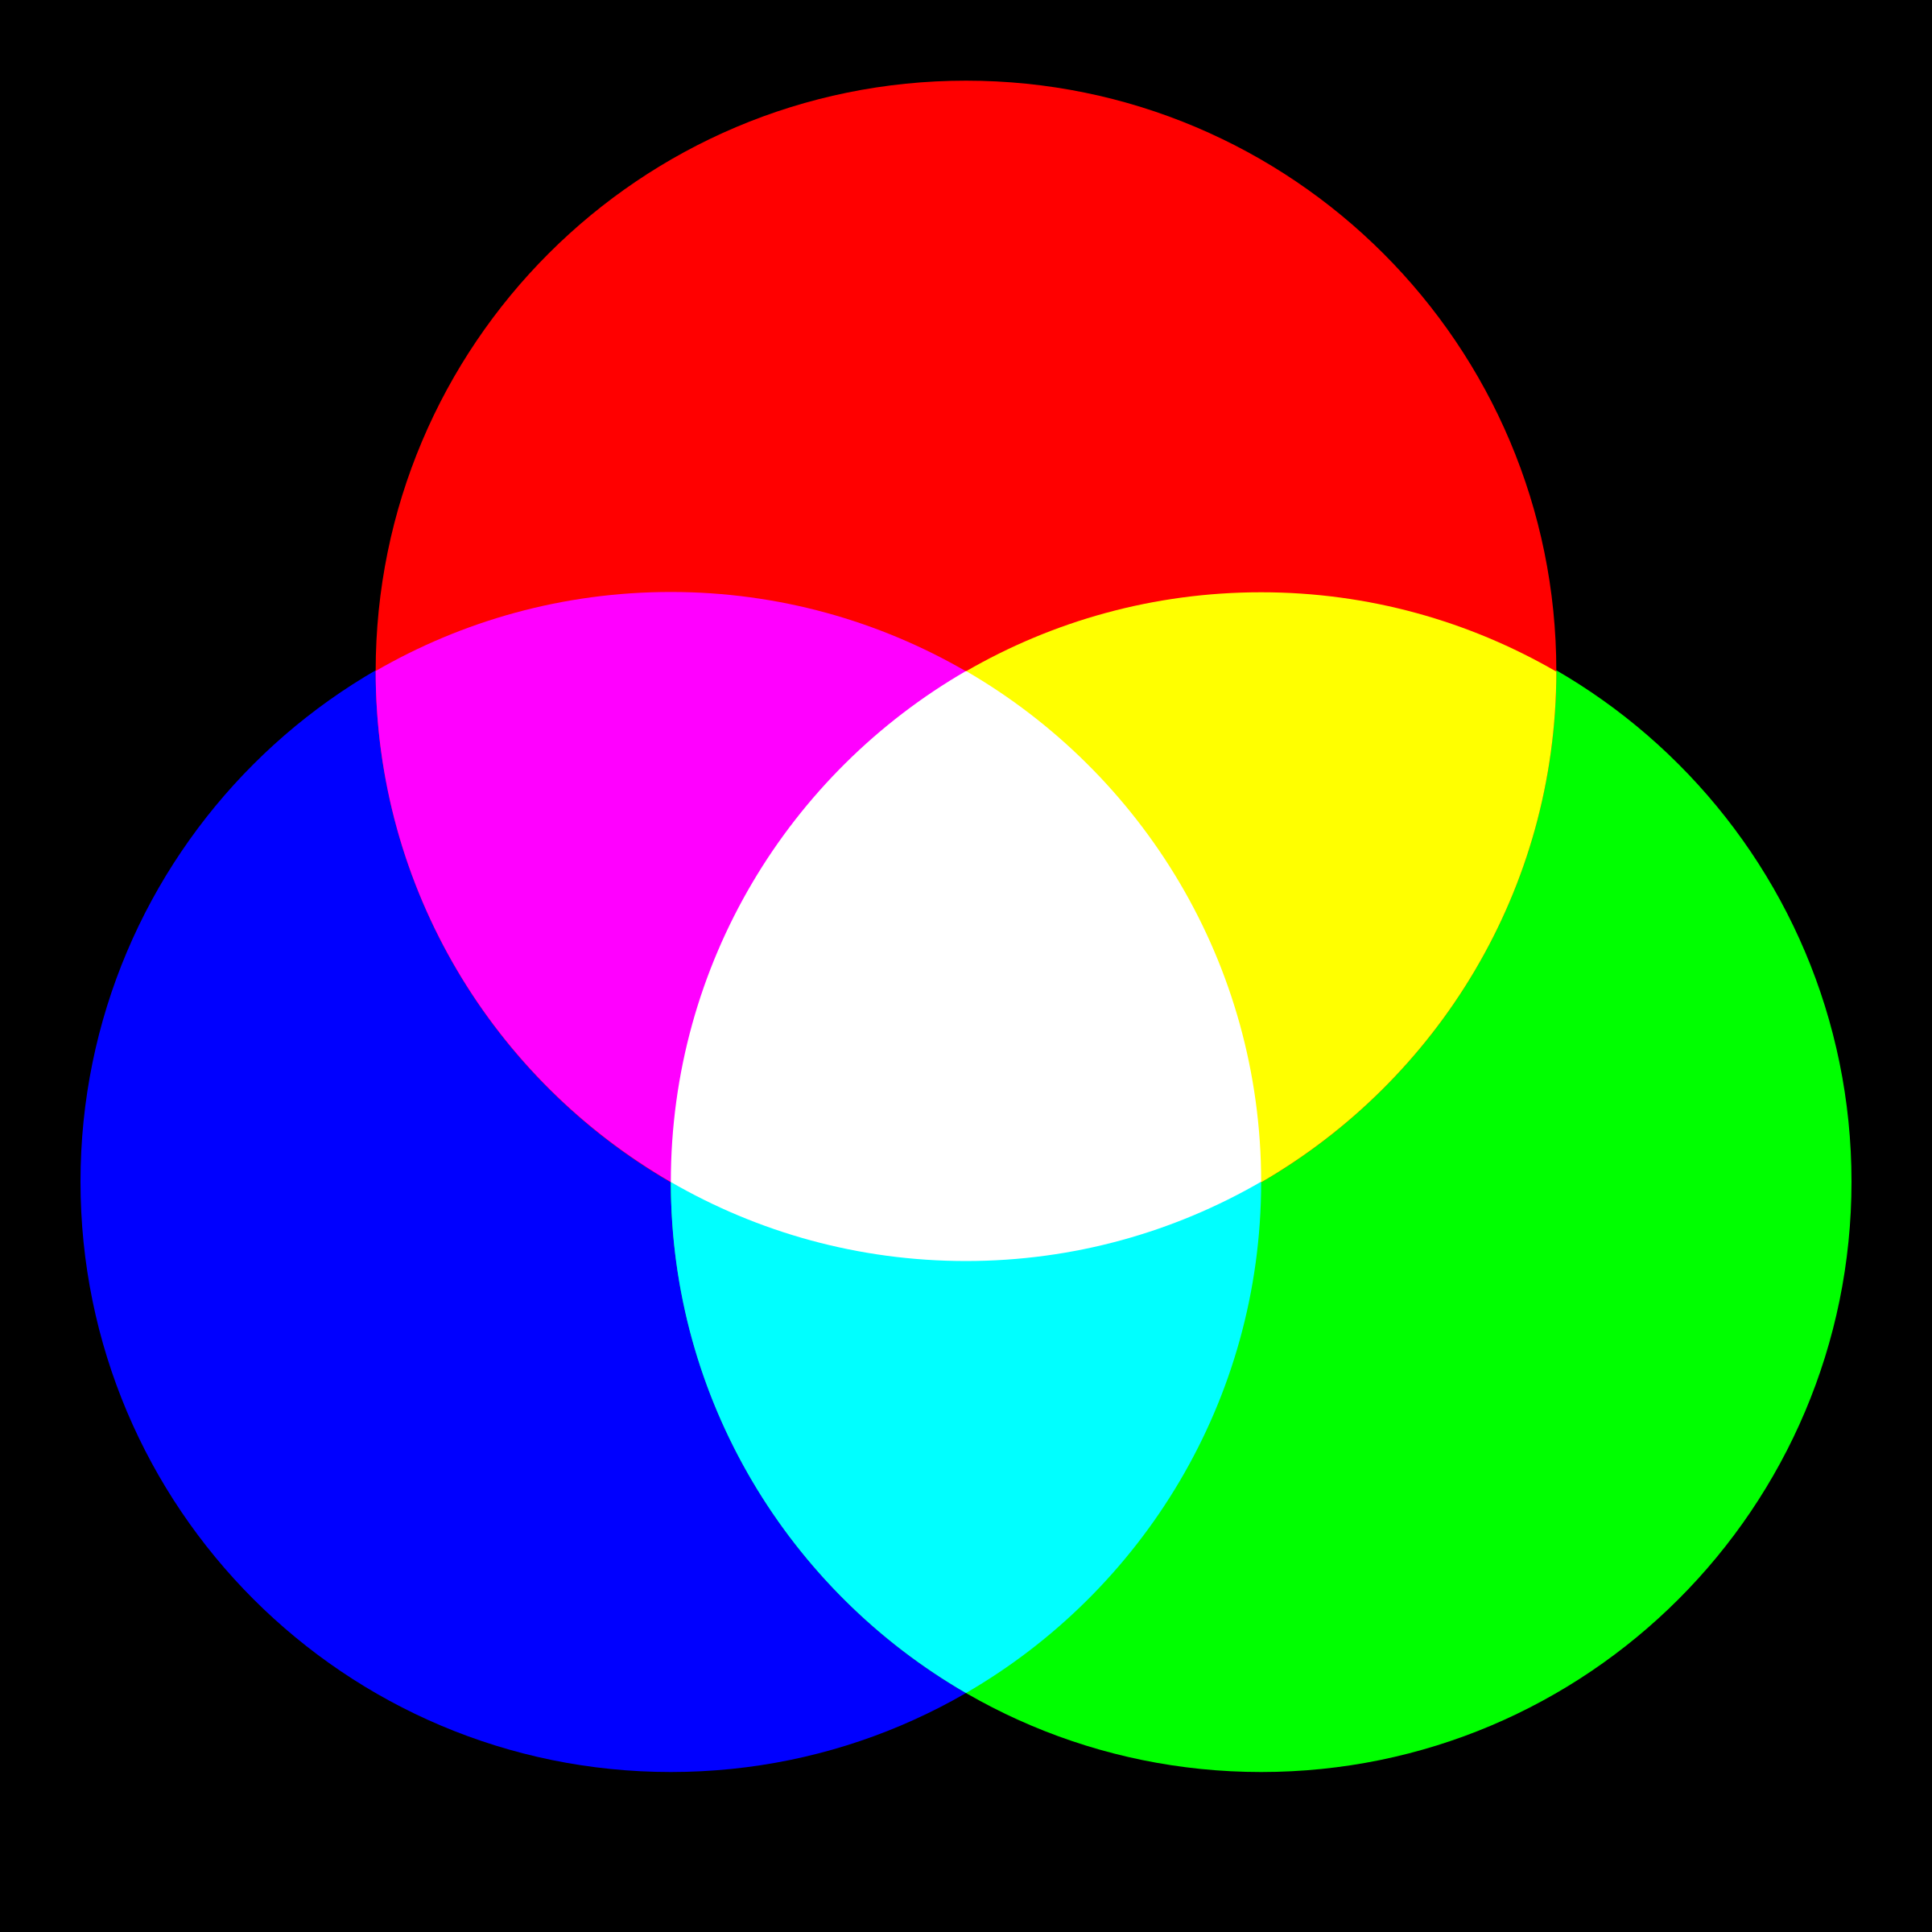 Clipart Circle Rgb Color Mix